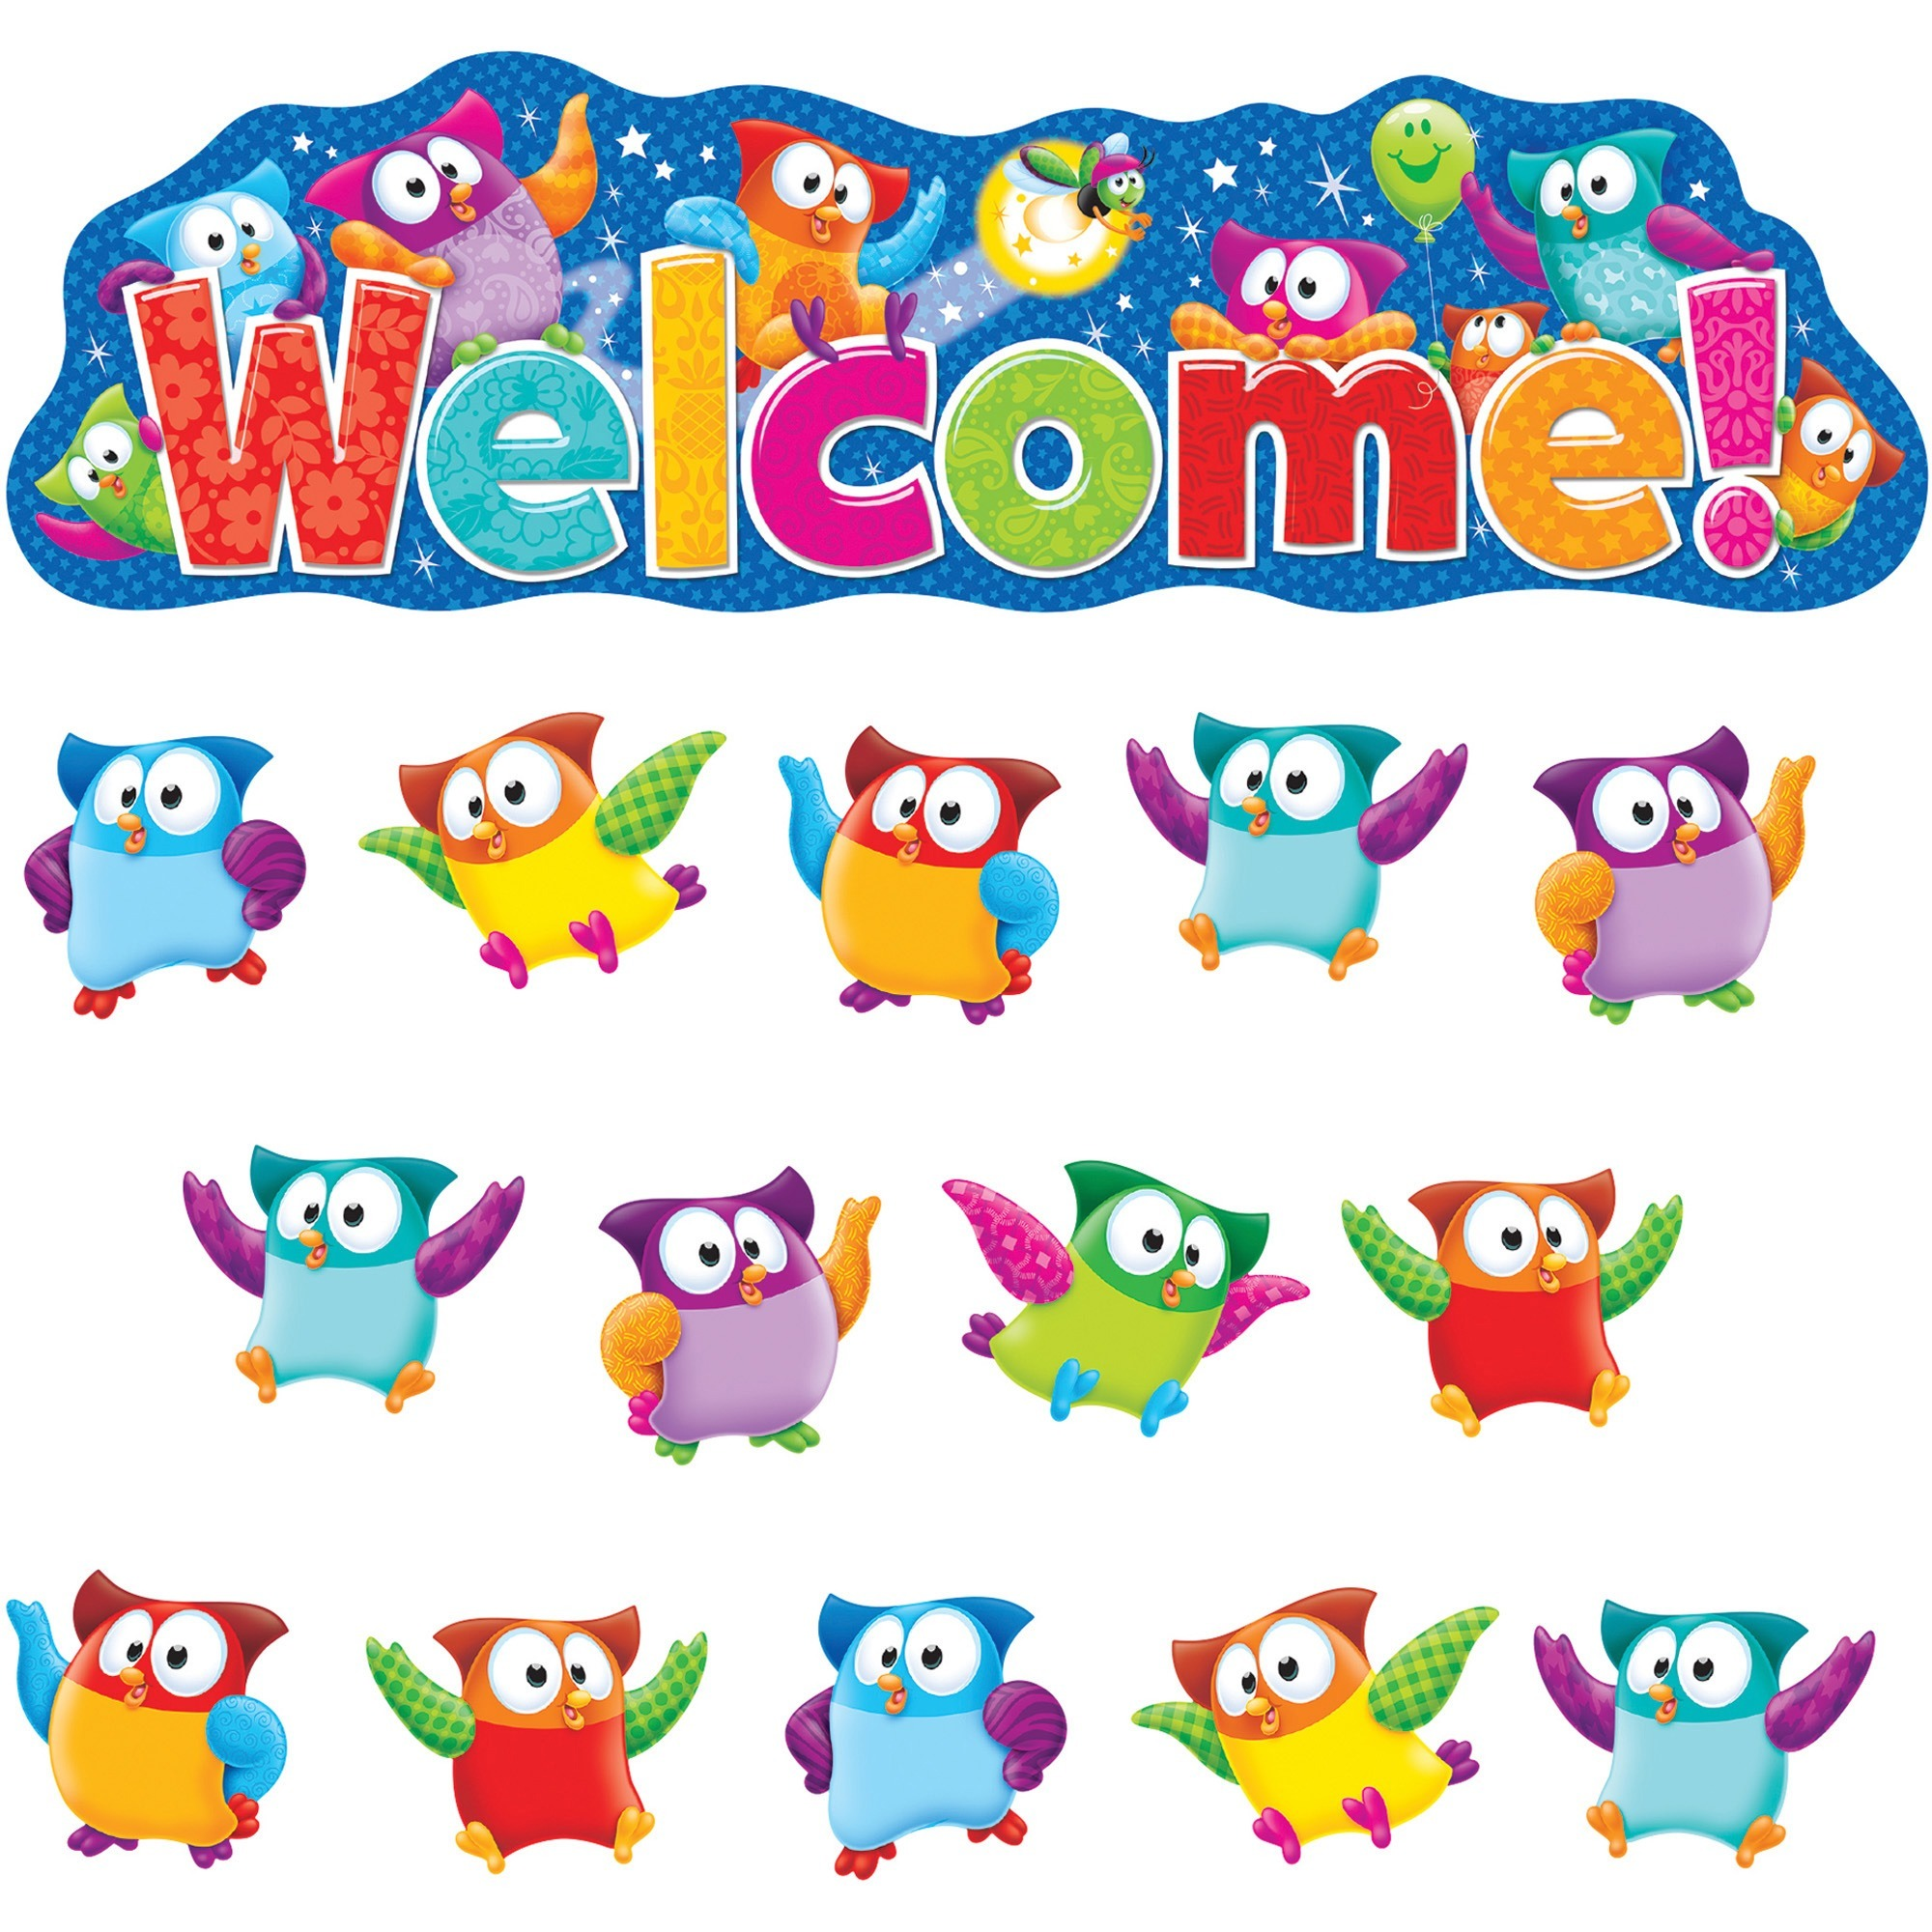 Trend Owl-Stars! Welcom Bulletin Board Set, Multicolor, 38 / Set (Quantity)